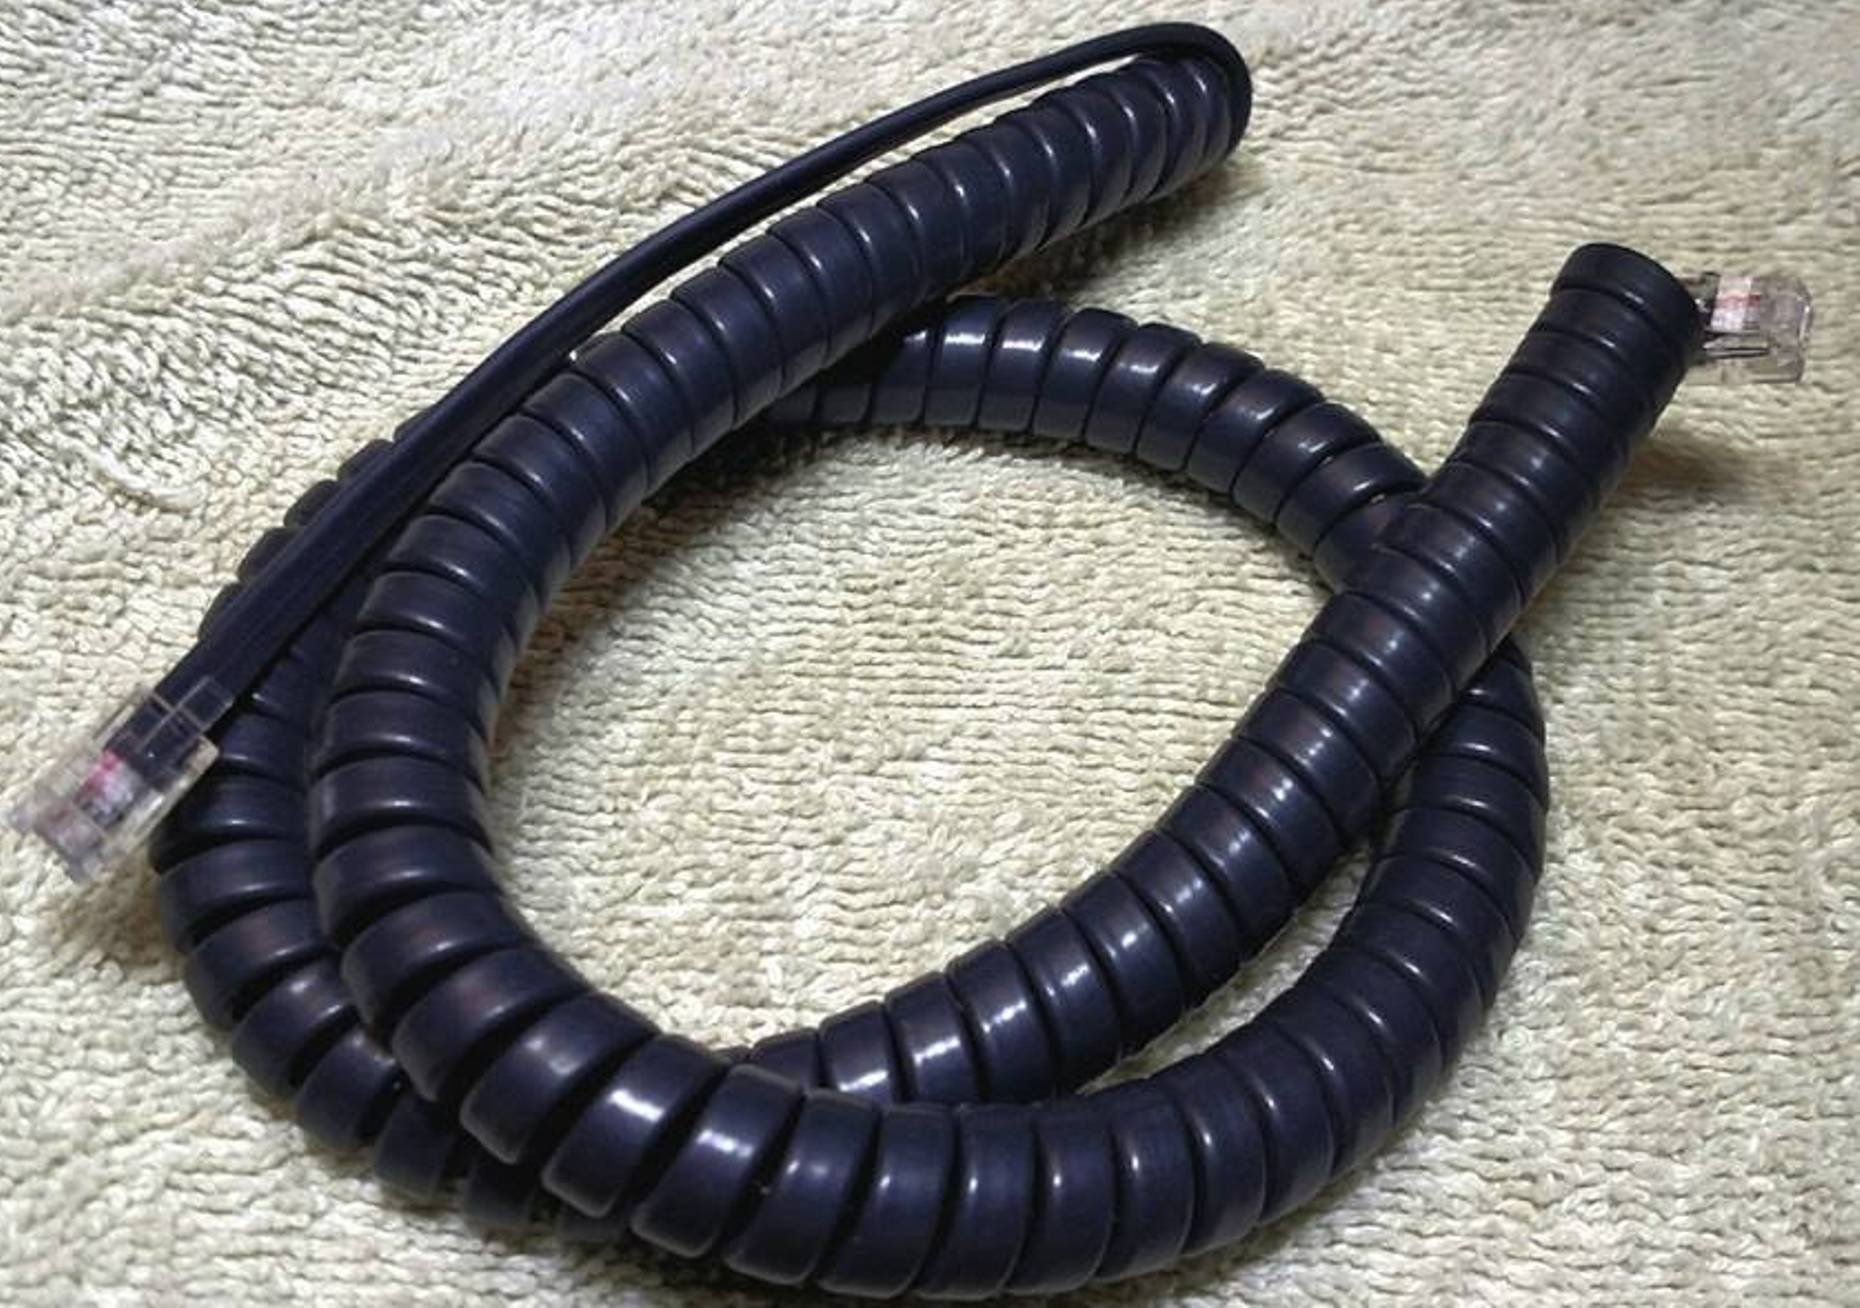 Lot of 10 Gray 12' Ft Handset Cords for Cisco IP Phone 7800 7900 8800 Series with 5'' Tail/Leader Charcoal 7940 7941 7942 7945 7960 7961 7962 7965 8811 8841 8845 8851 8861 (10 Pack) by DIY-BizPhones